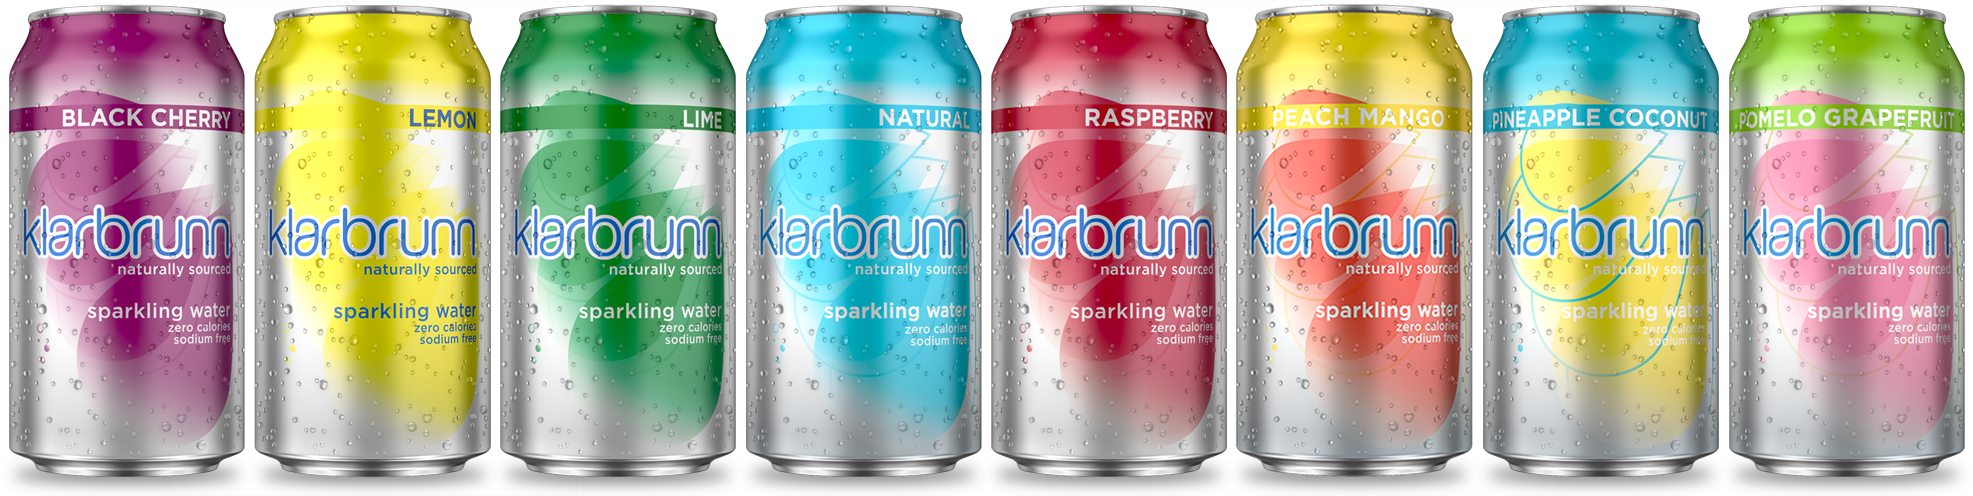 What Are Natural Flavors In Sparkling Water